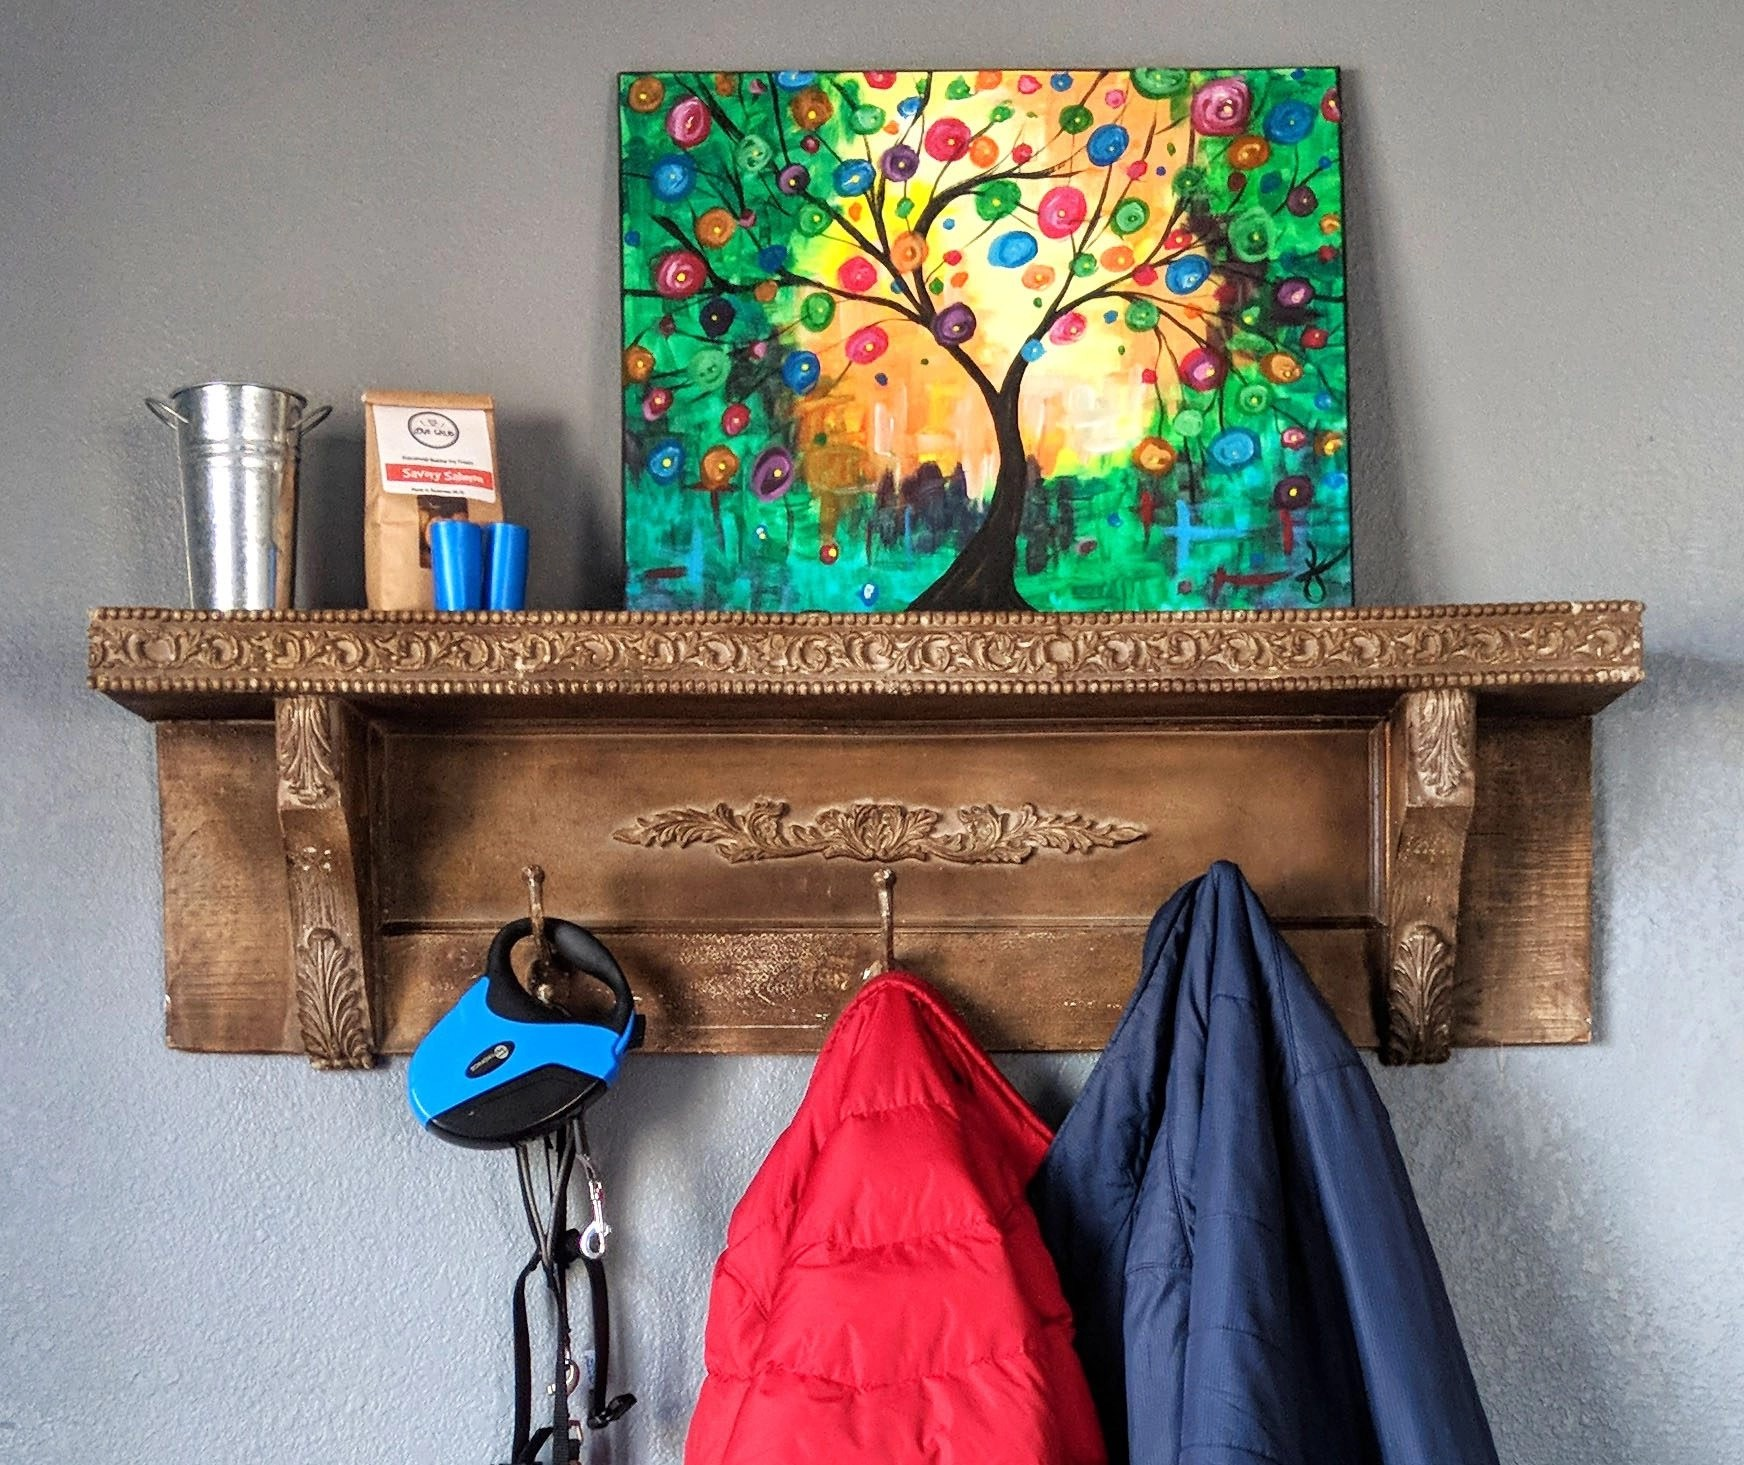 two coats and a dog leash hanging from a wooden coat rack